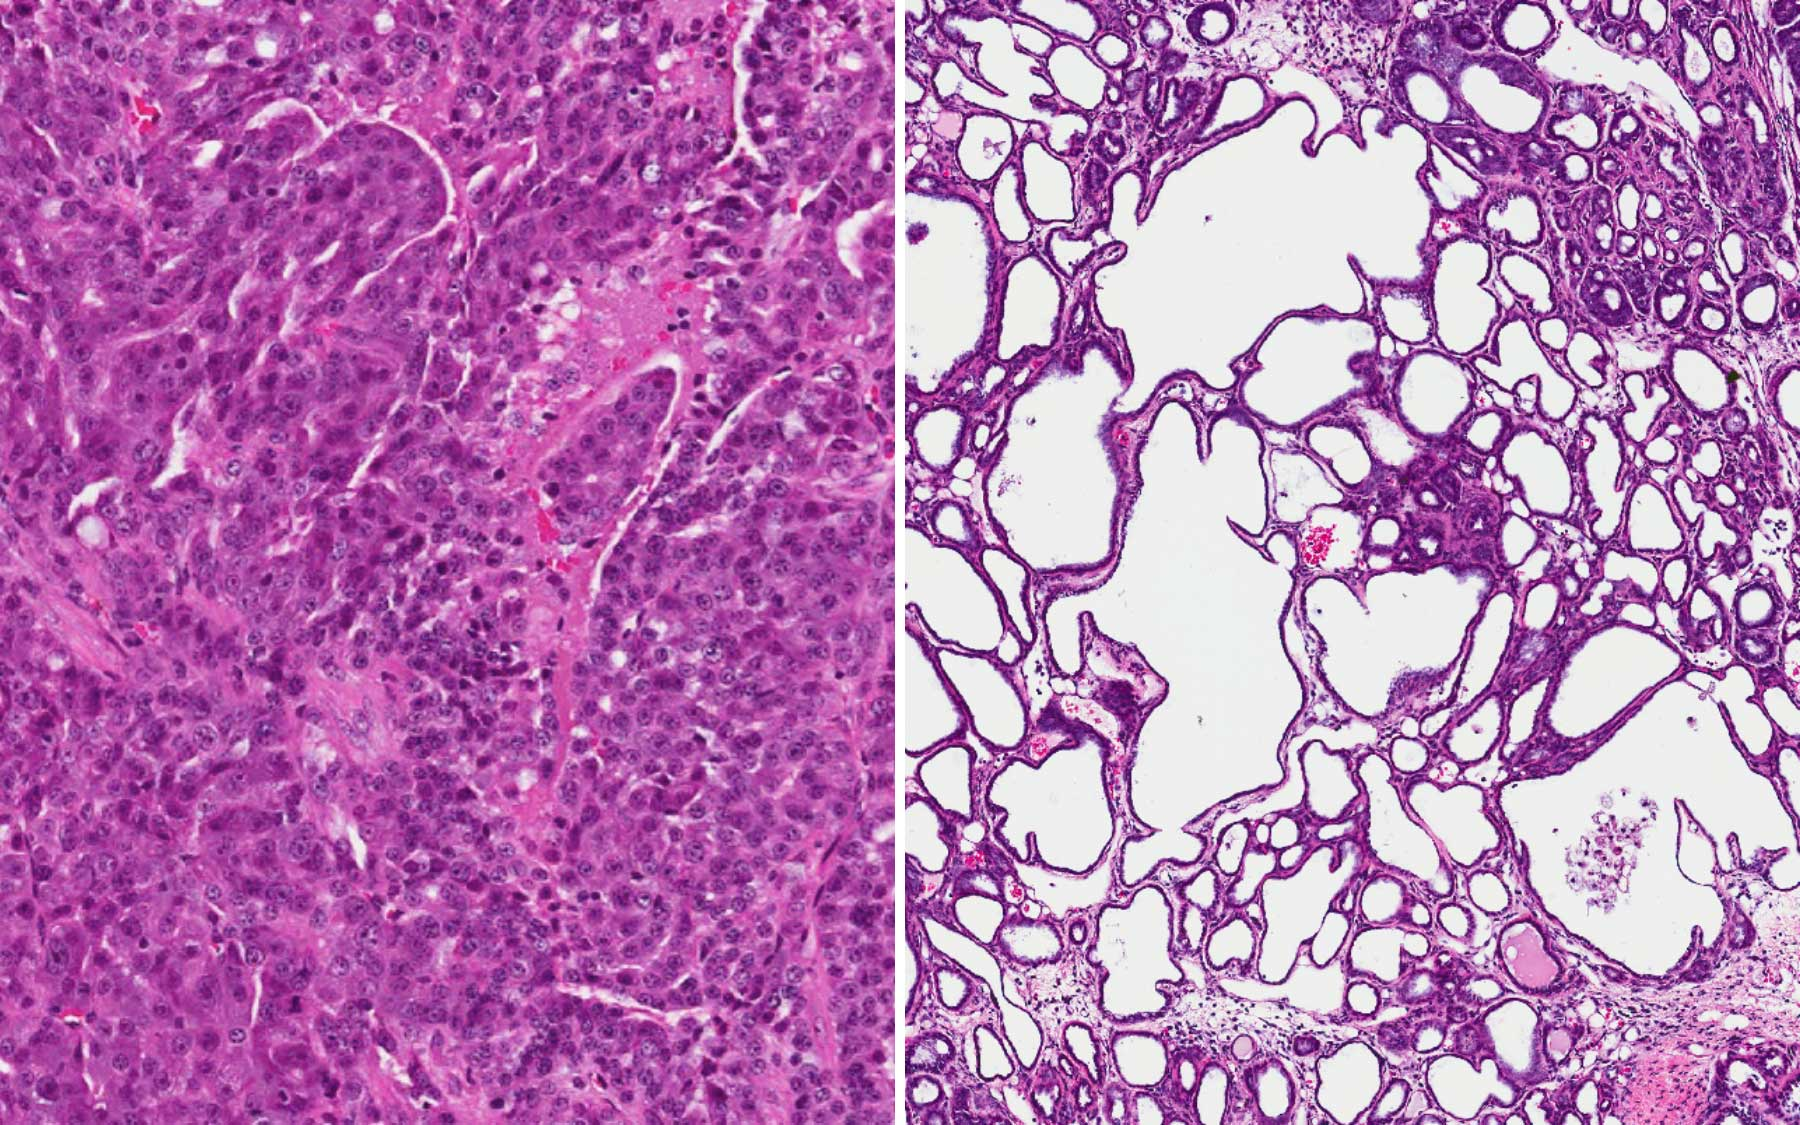 metastatic breast tumor